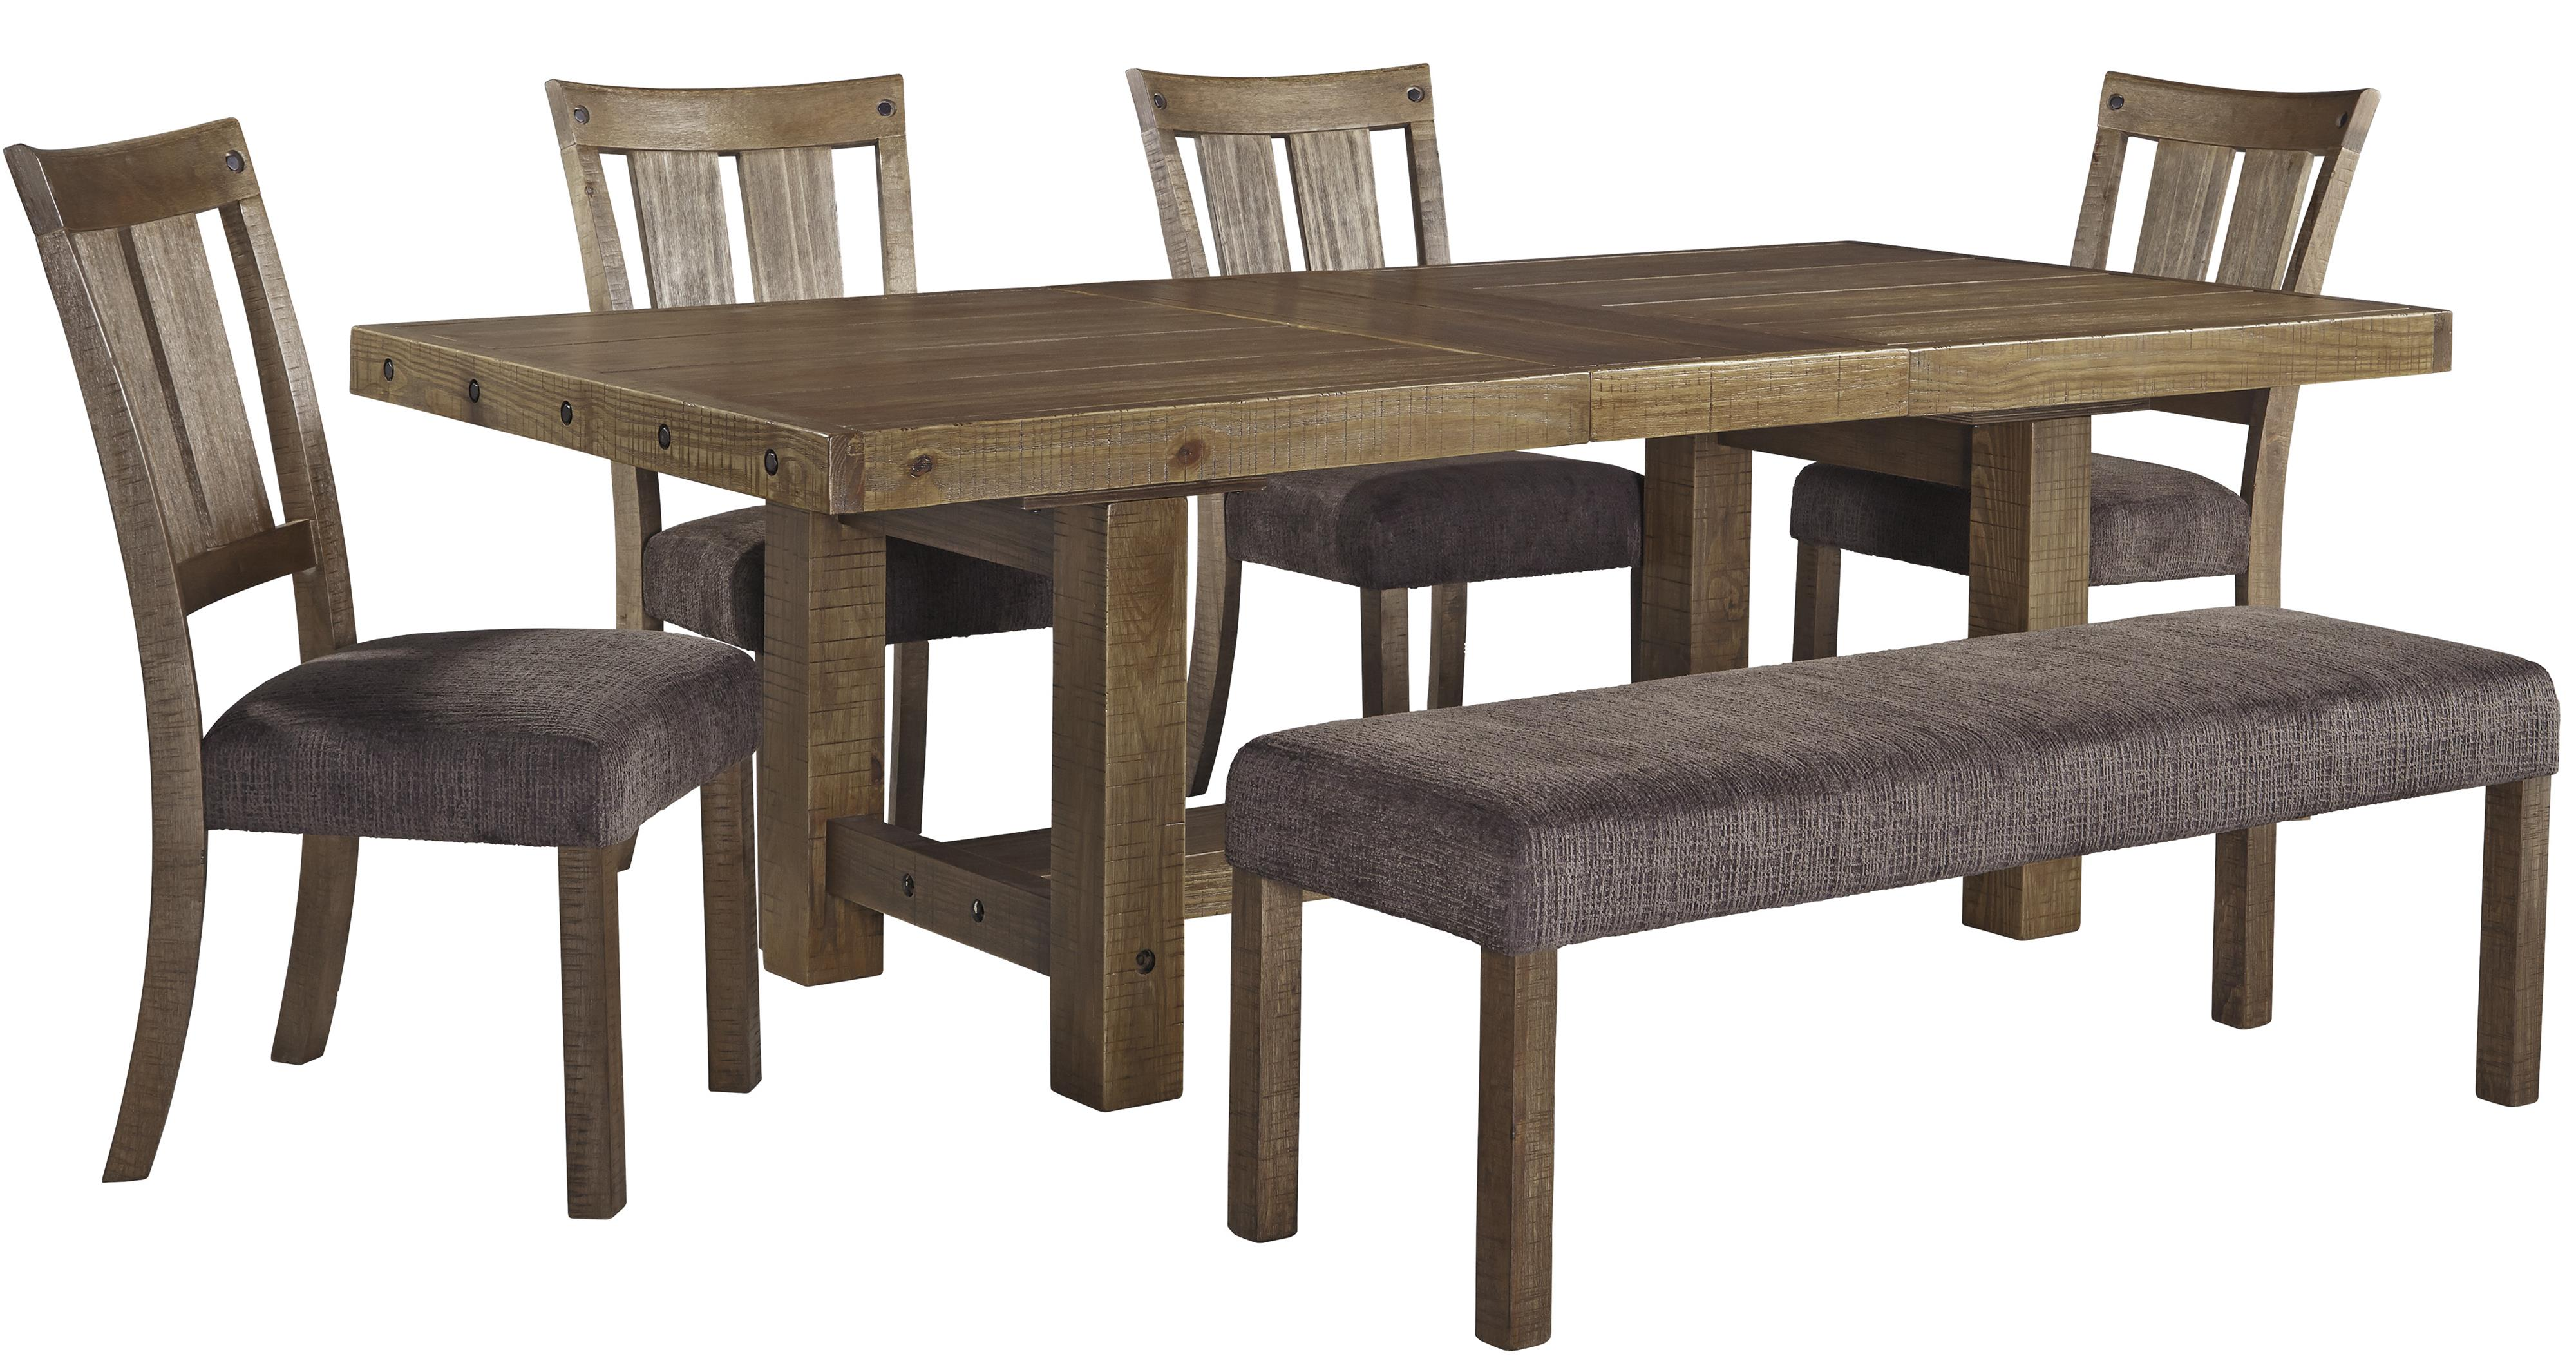 6 Piece Table Amp Chair Set With Bench By Signature Design